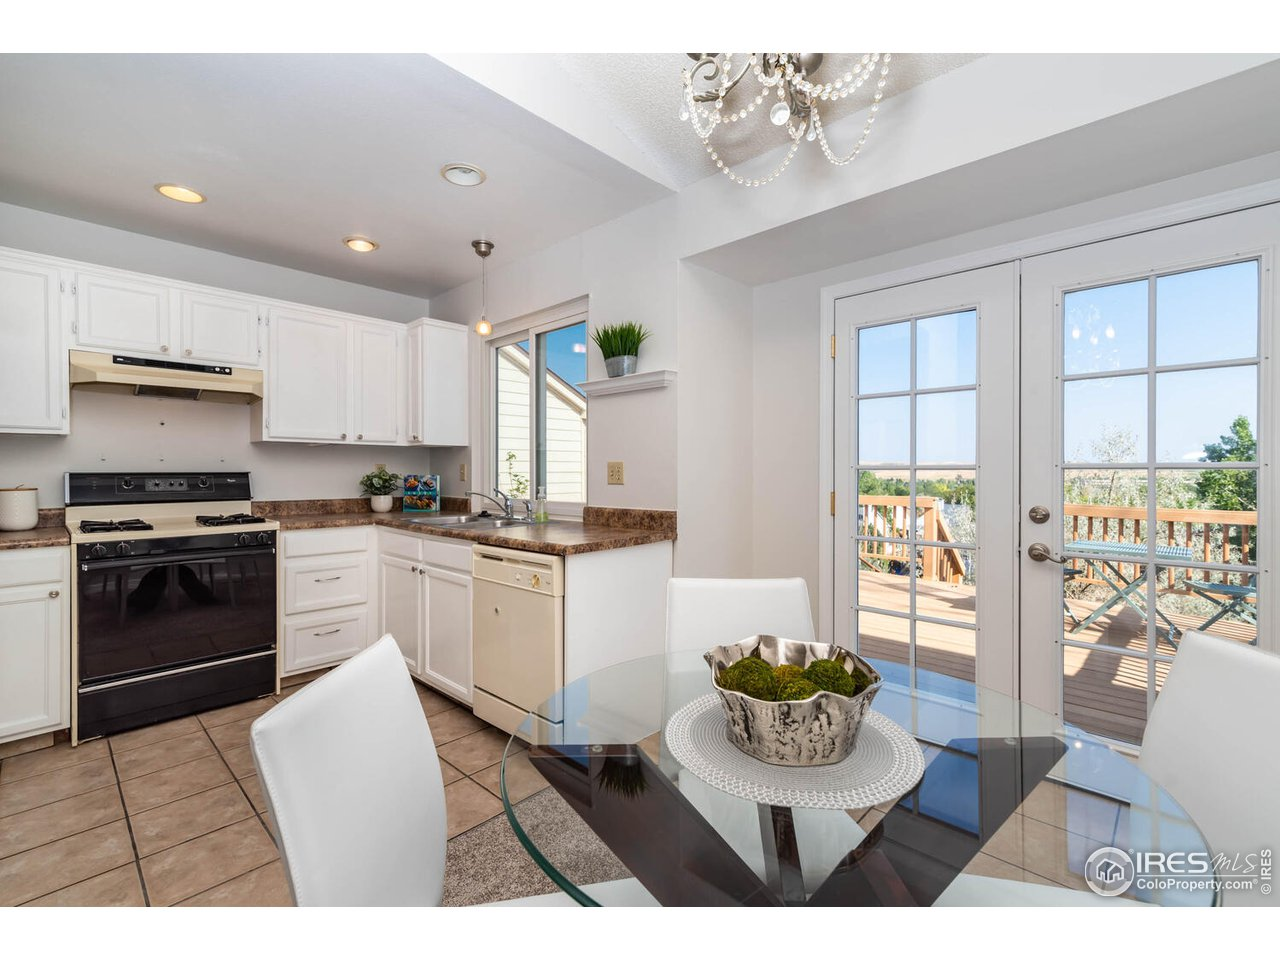 Kitchen with views to open space